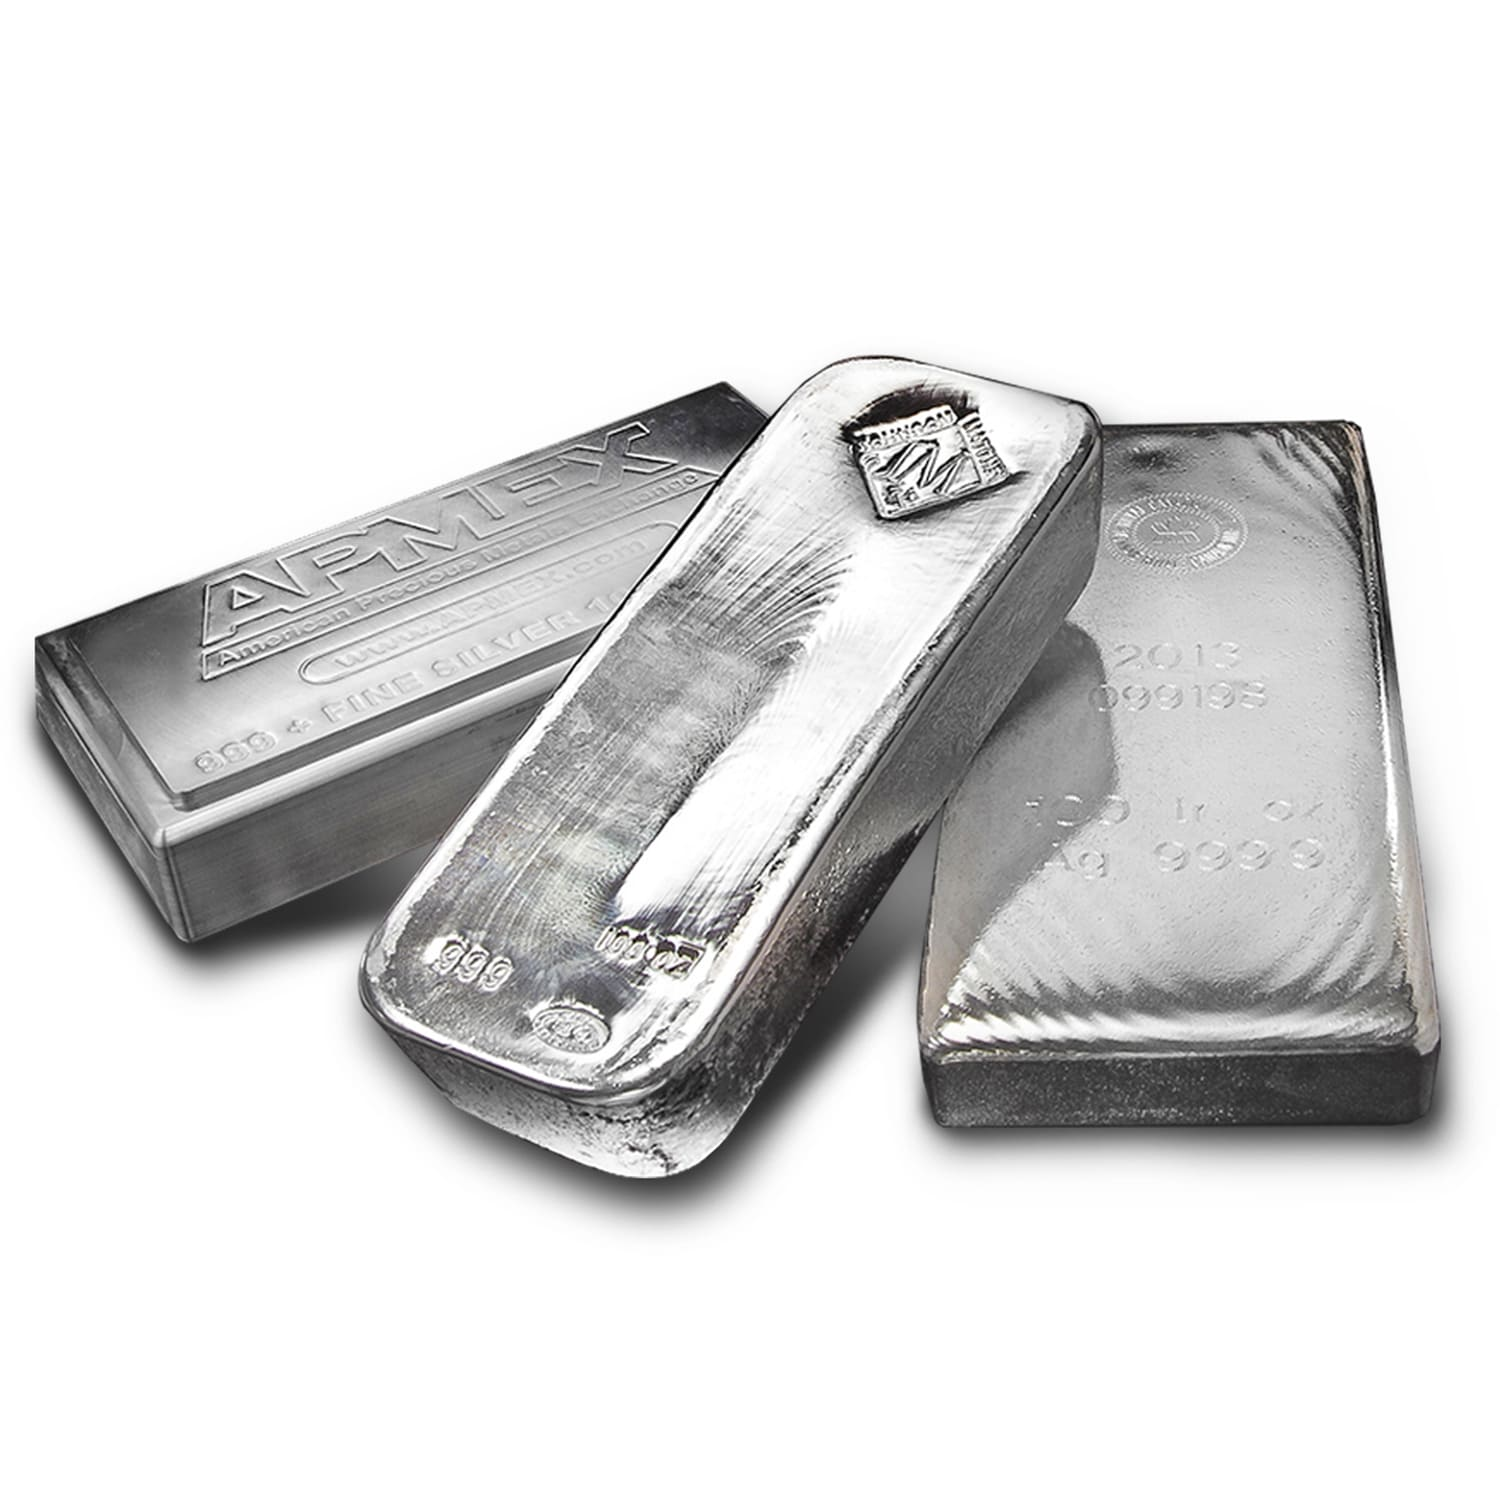 97.2 oz Silver Bars - Secondary Market